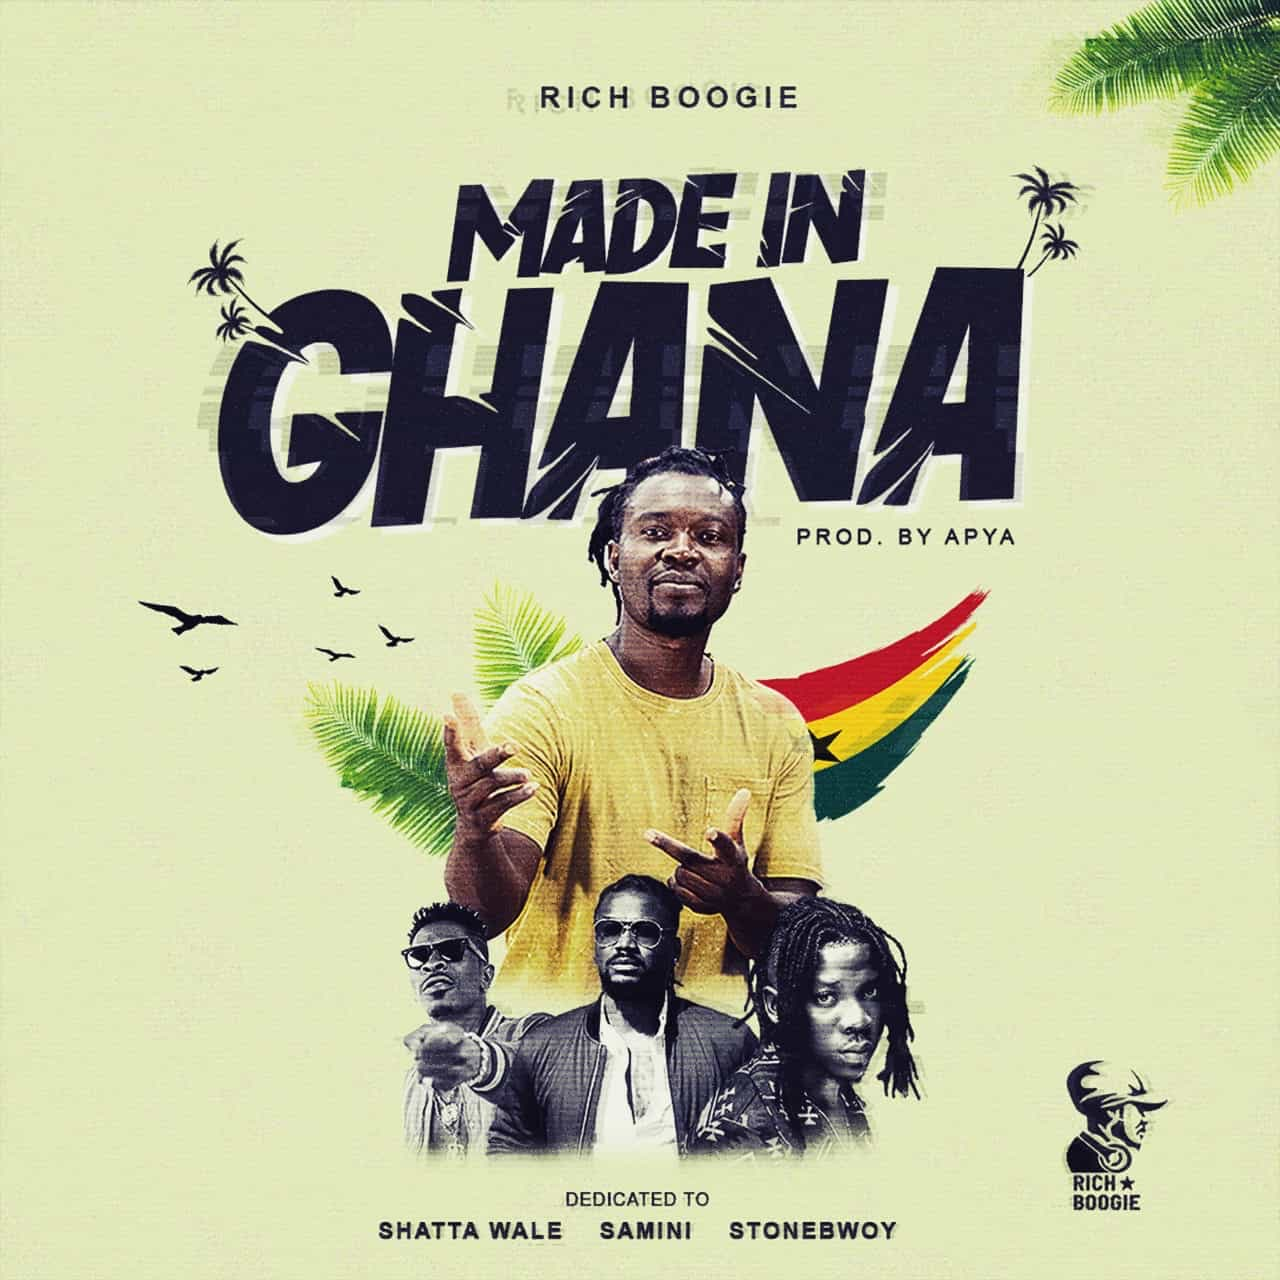 , Listen Up: Rich Boogie teams up with Samini, Shatta Wale & Stonebwoy for 'Made In Ghana', Frederick Nuetei